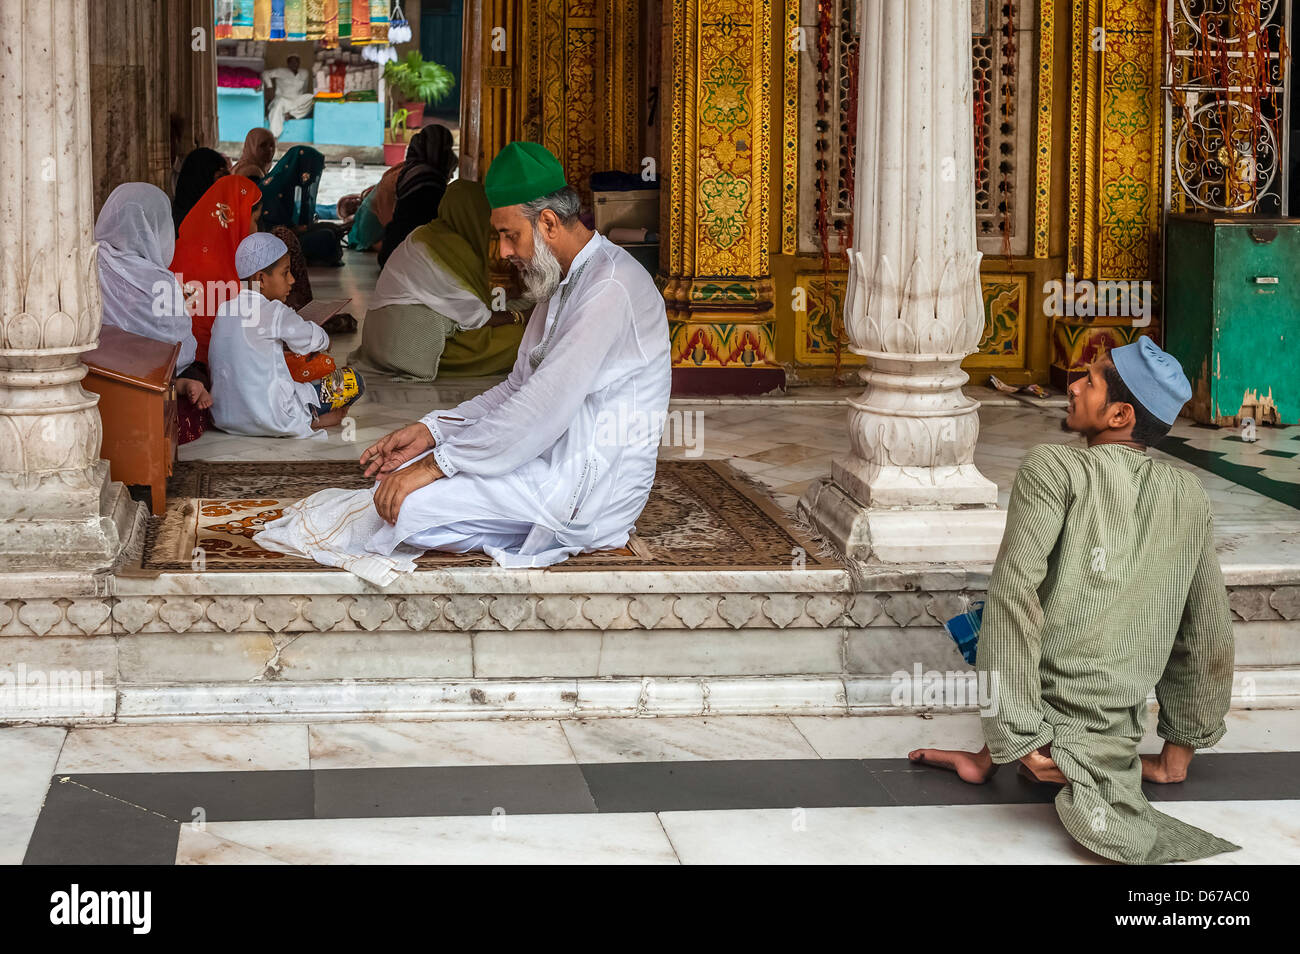 A man with green hat prays whilst disabled beggar waits patiently for alms at mosque in Nizamuddin, Old Delhi, Delhi, - Stock Image